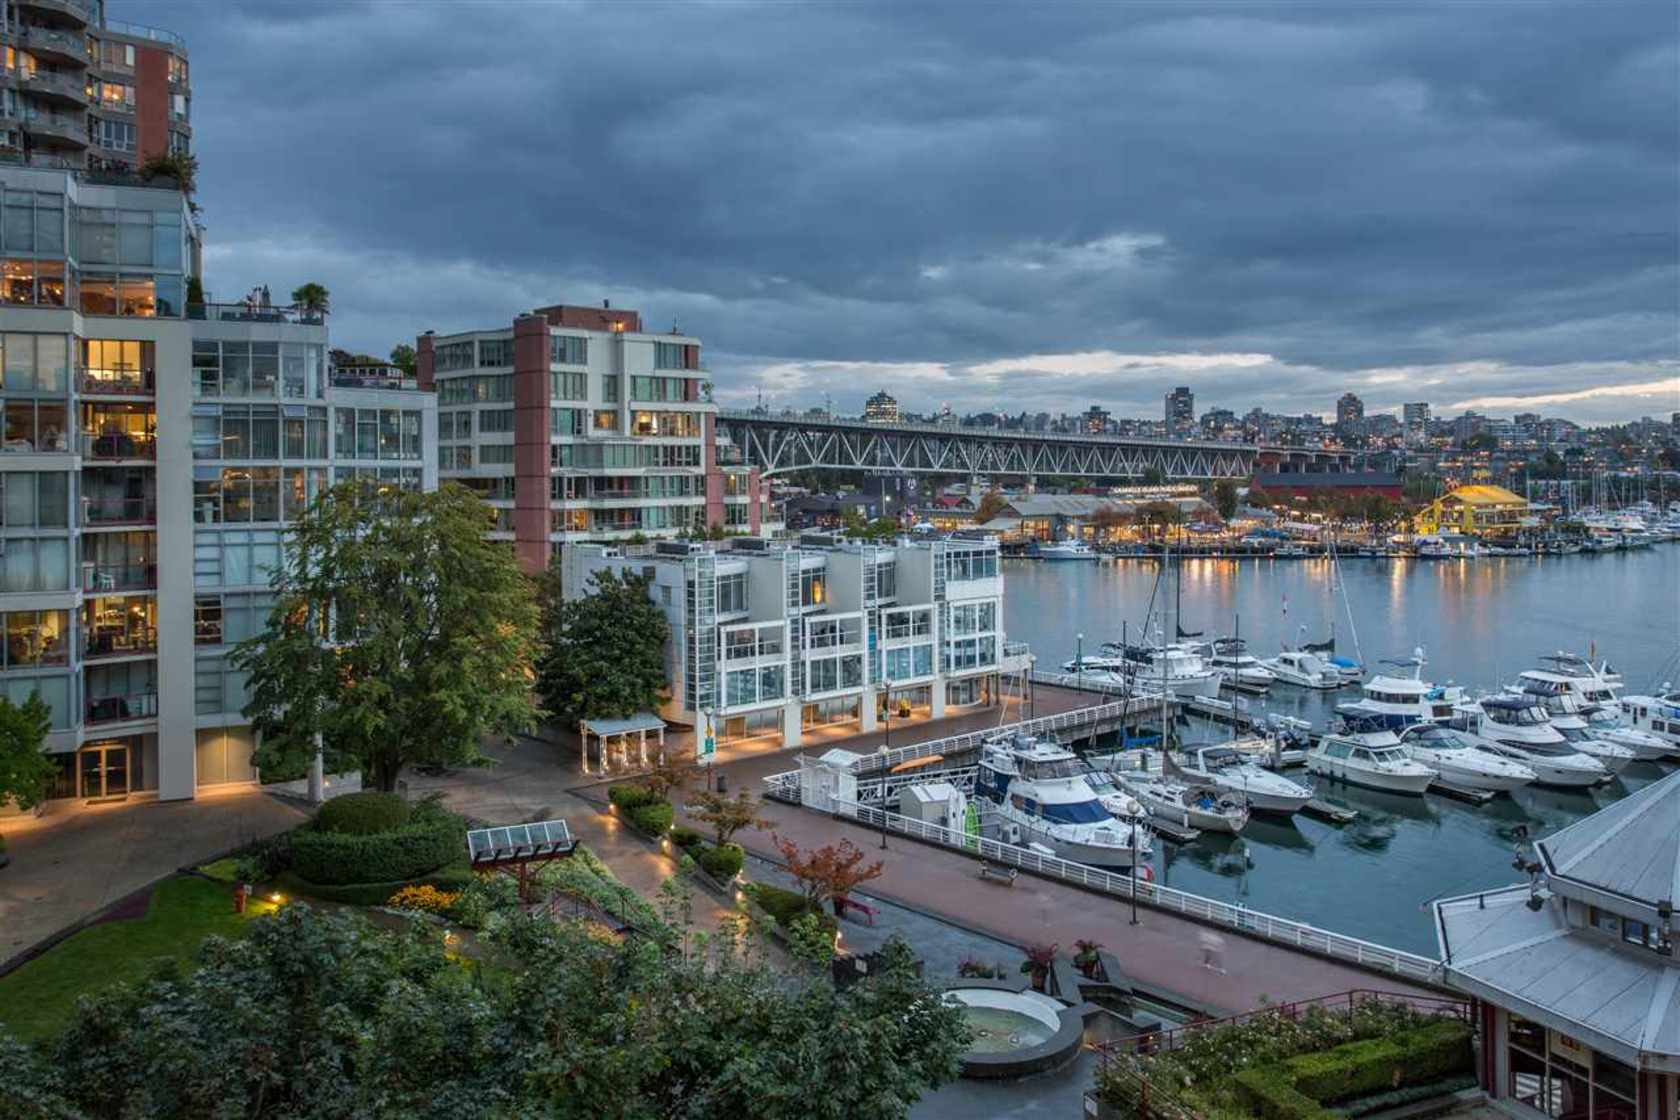 262327639-2 at 506 - 1008 Beach Avenue, Beach Avenue (Yaletown), Vancouver West